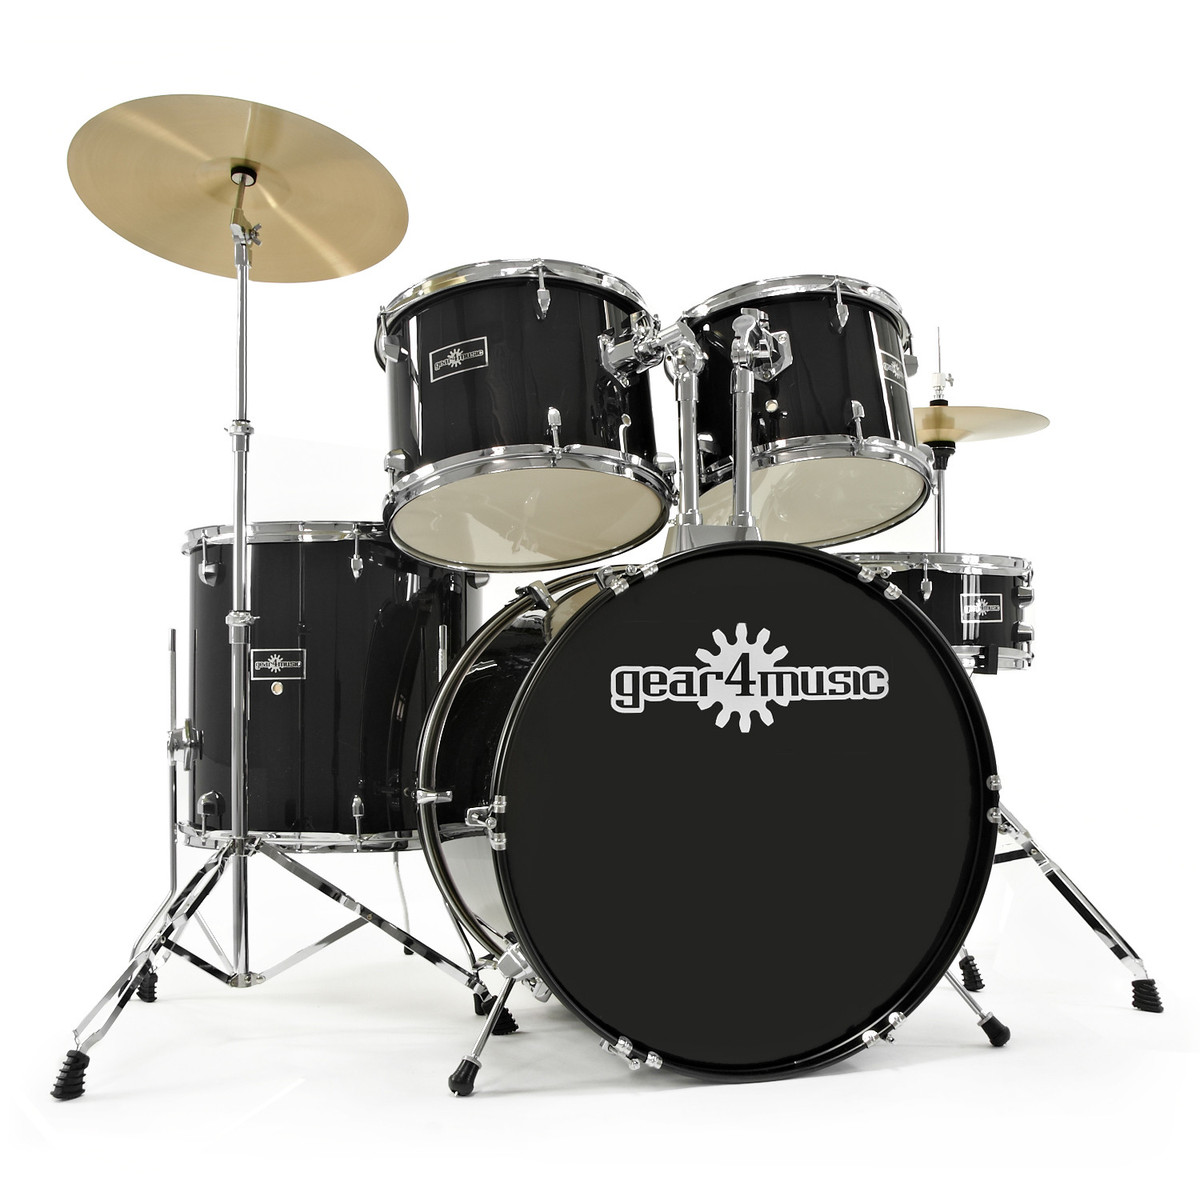 Image of GD-2 Drum Kit by Gear4music Black